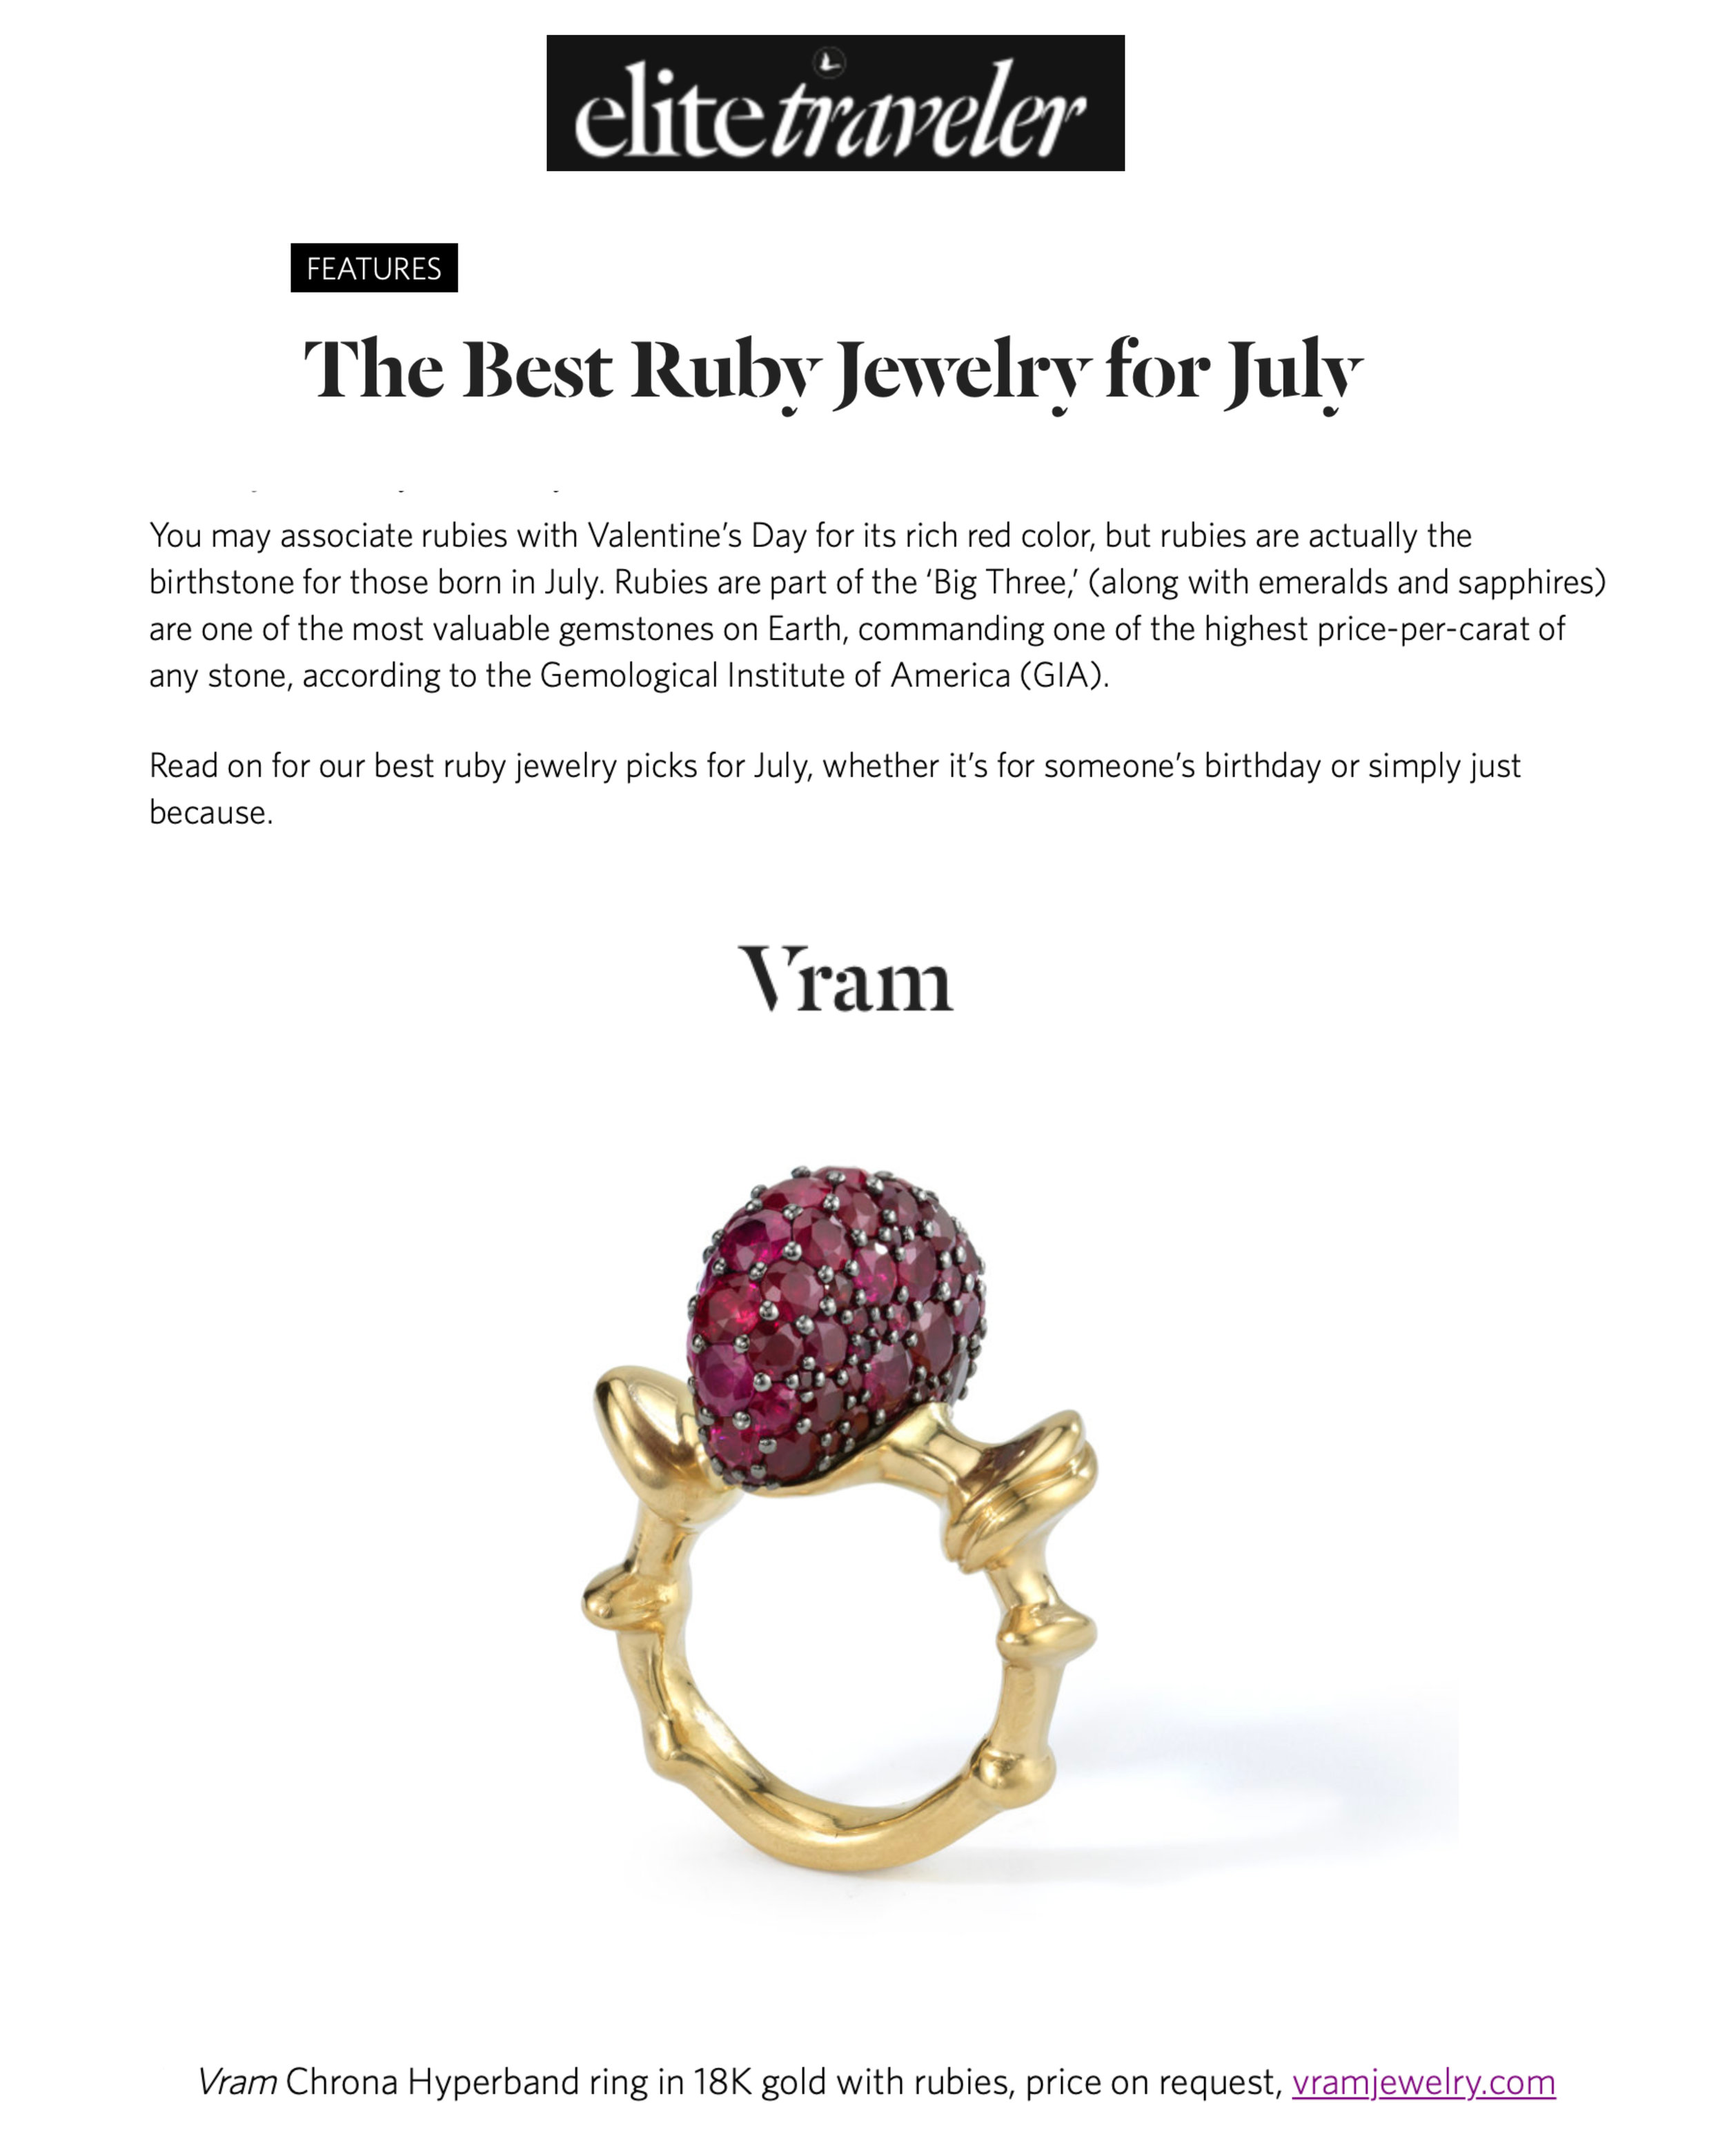 VRAM Chrona Hyper Band Elite Traveler Magazine Best Ruby Jewelry July 2019